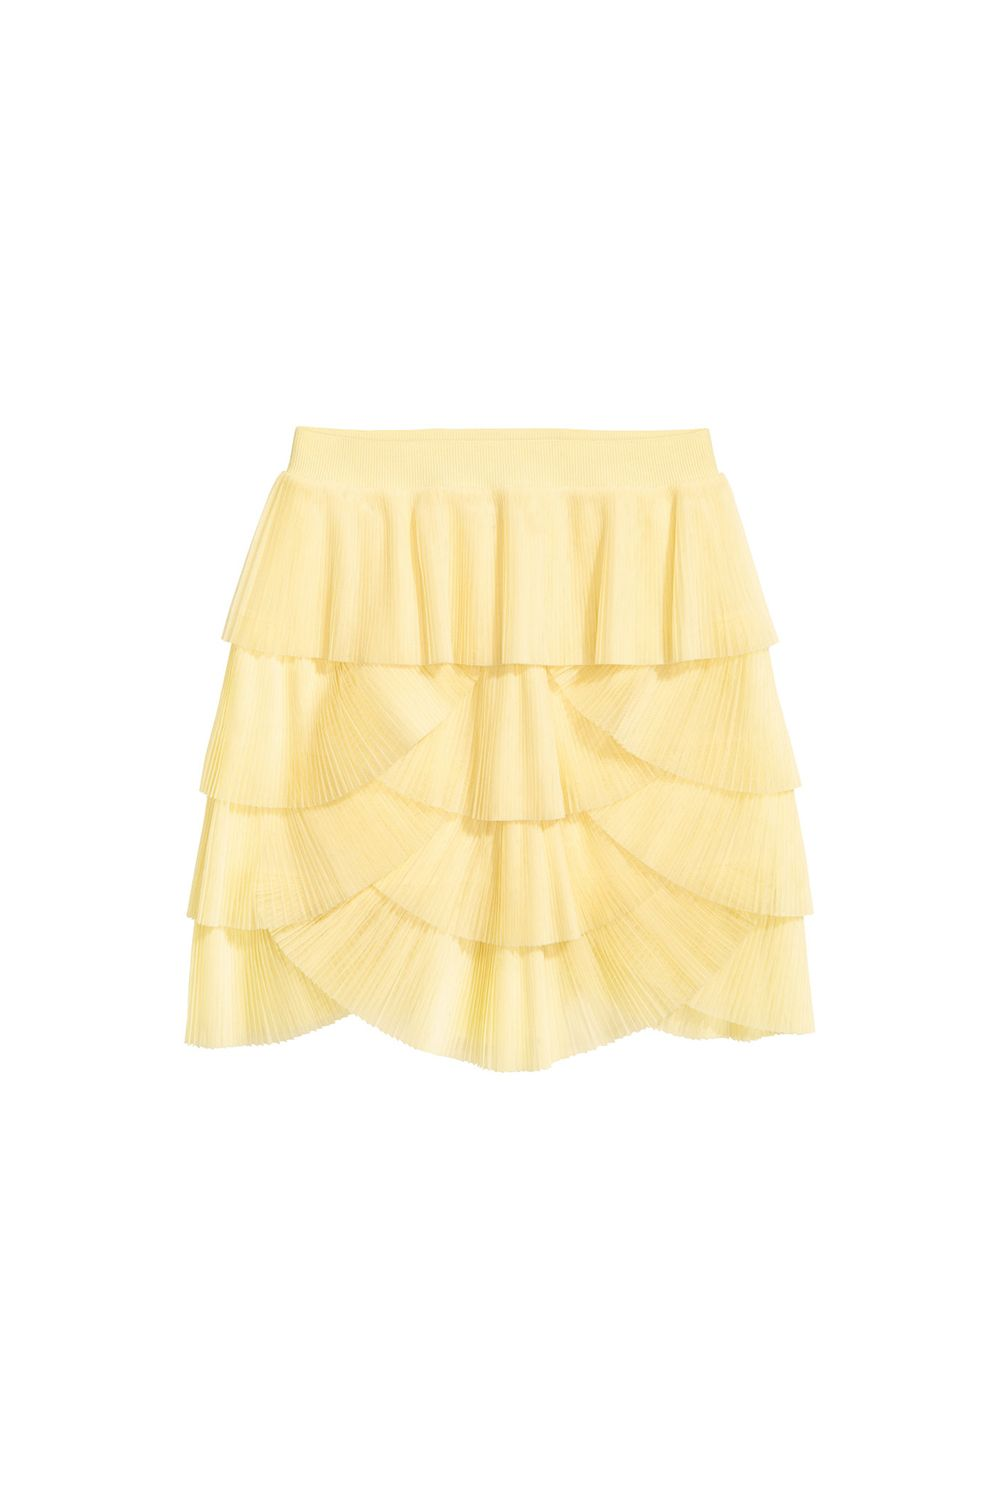 "<p>Lemon yellow and frilly scallops—what more do you need? (Besides a razor that hasn't been used 2,934 times.)</p><p>H&M, $60, <a href=""http://www.hm.com/us/product/70152?article=70152-A"" target=""_blank"" data-tracking-id=""recirc-text-link"">hm.com</a>.</p>"